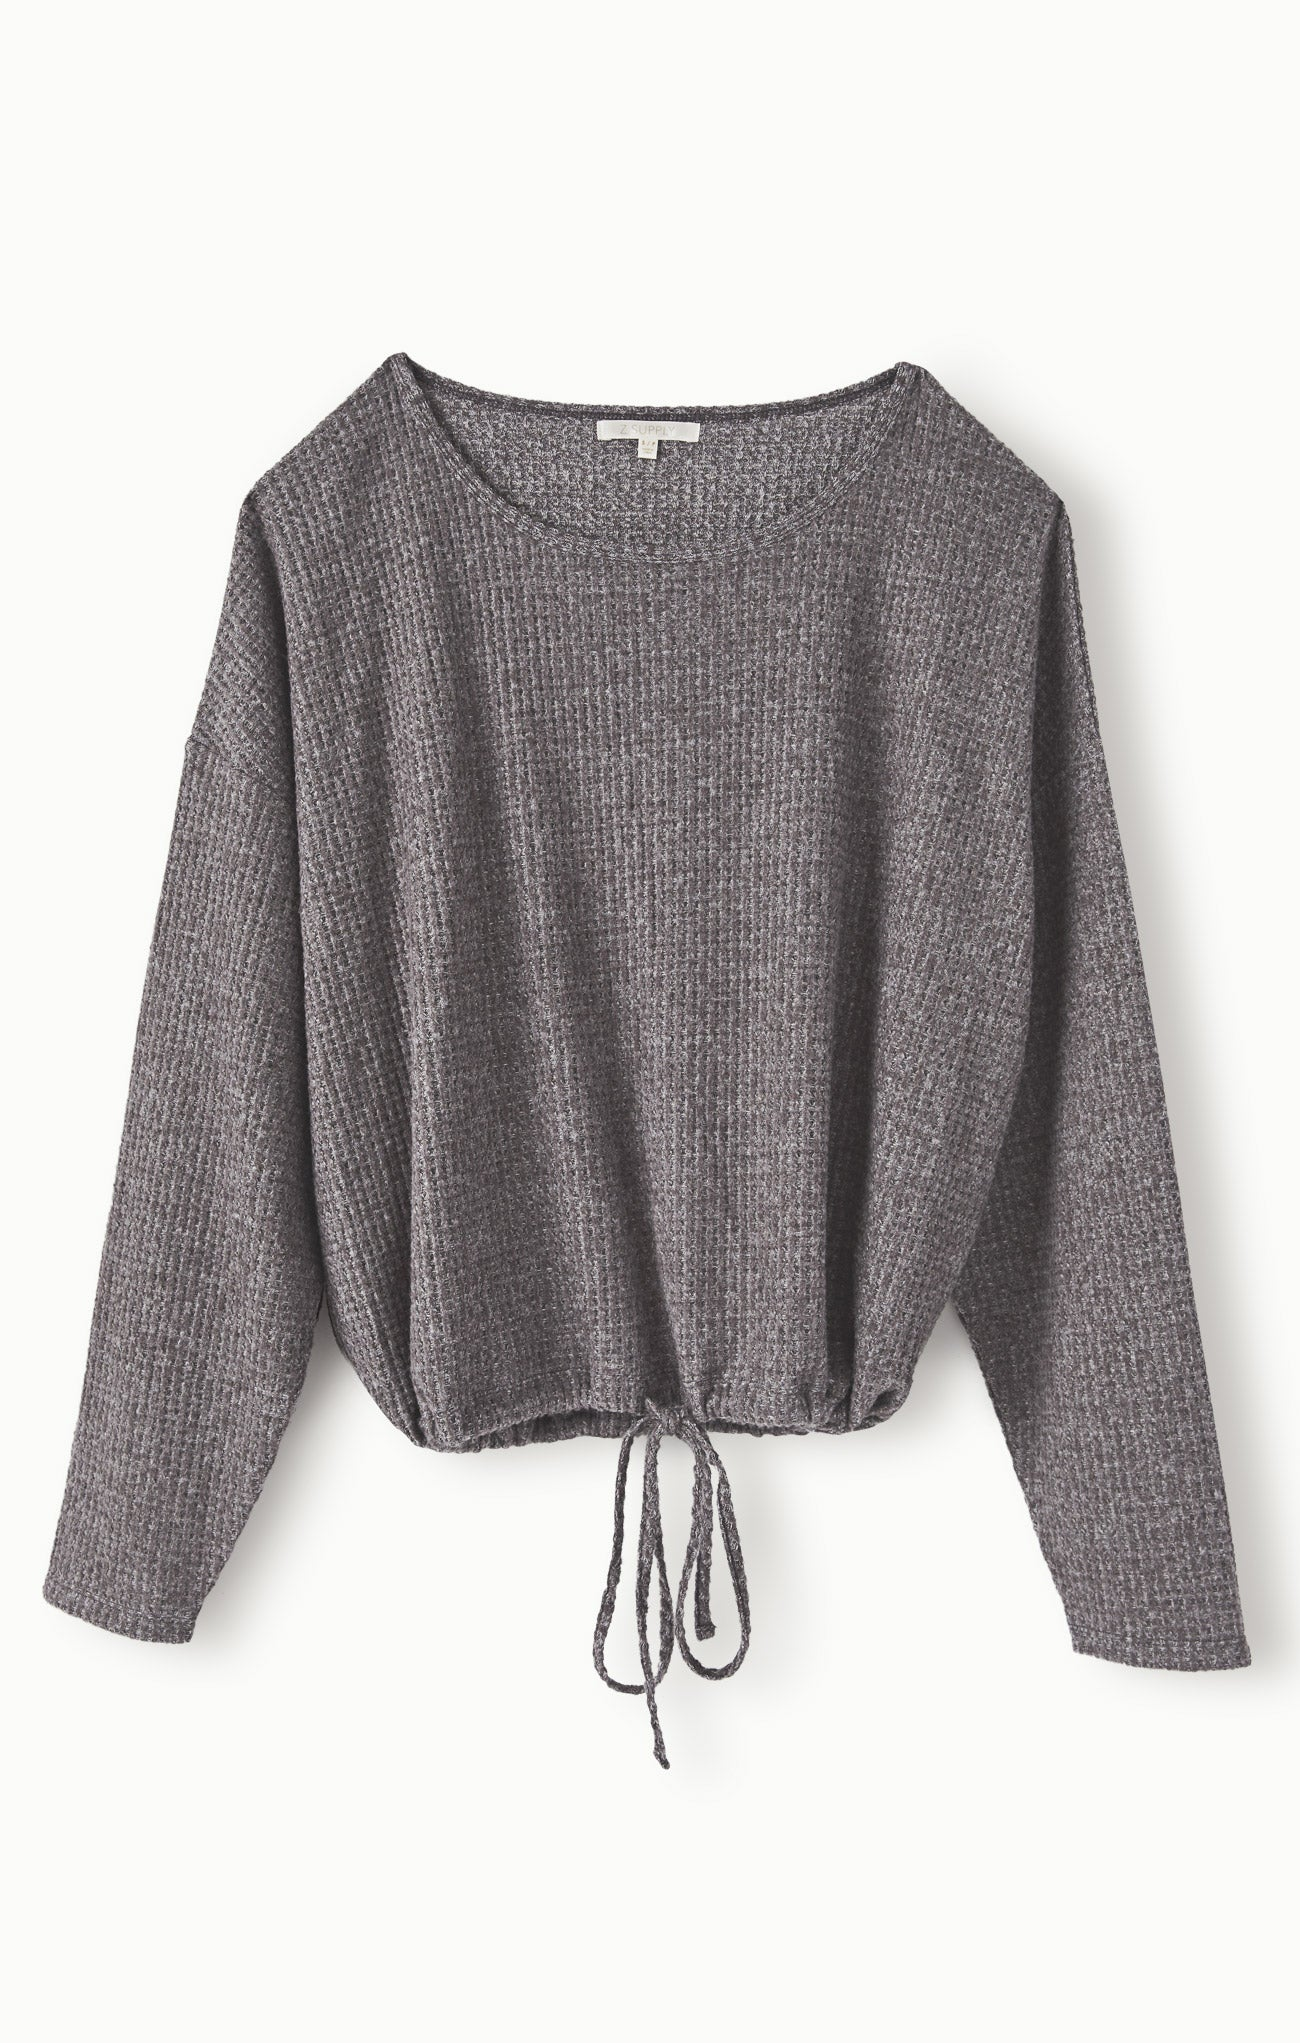 Tops Hang Out Thermal Long Sleeve Charcoal